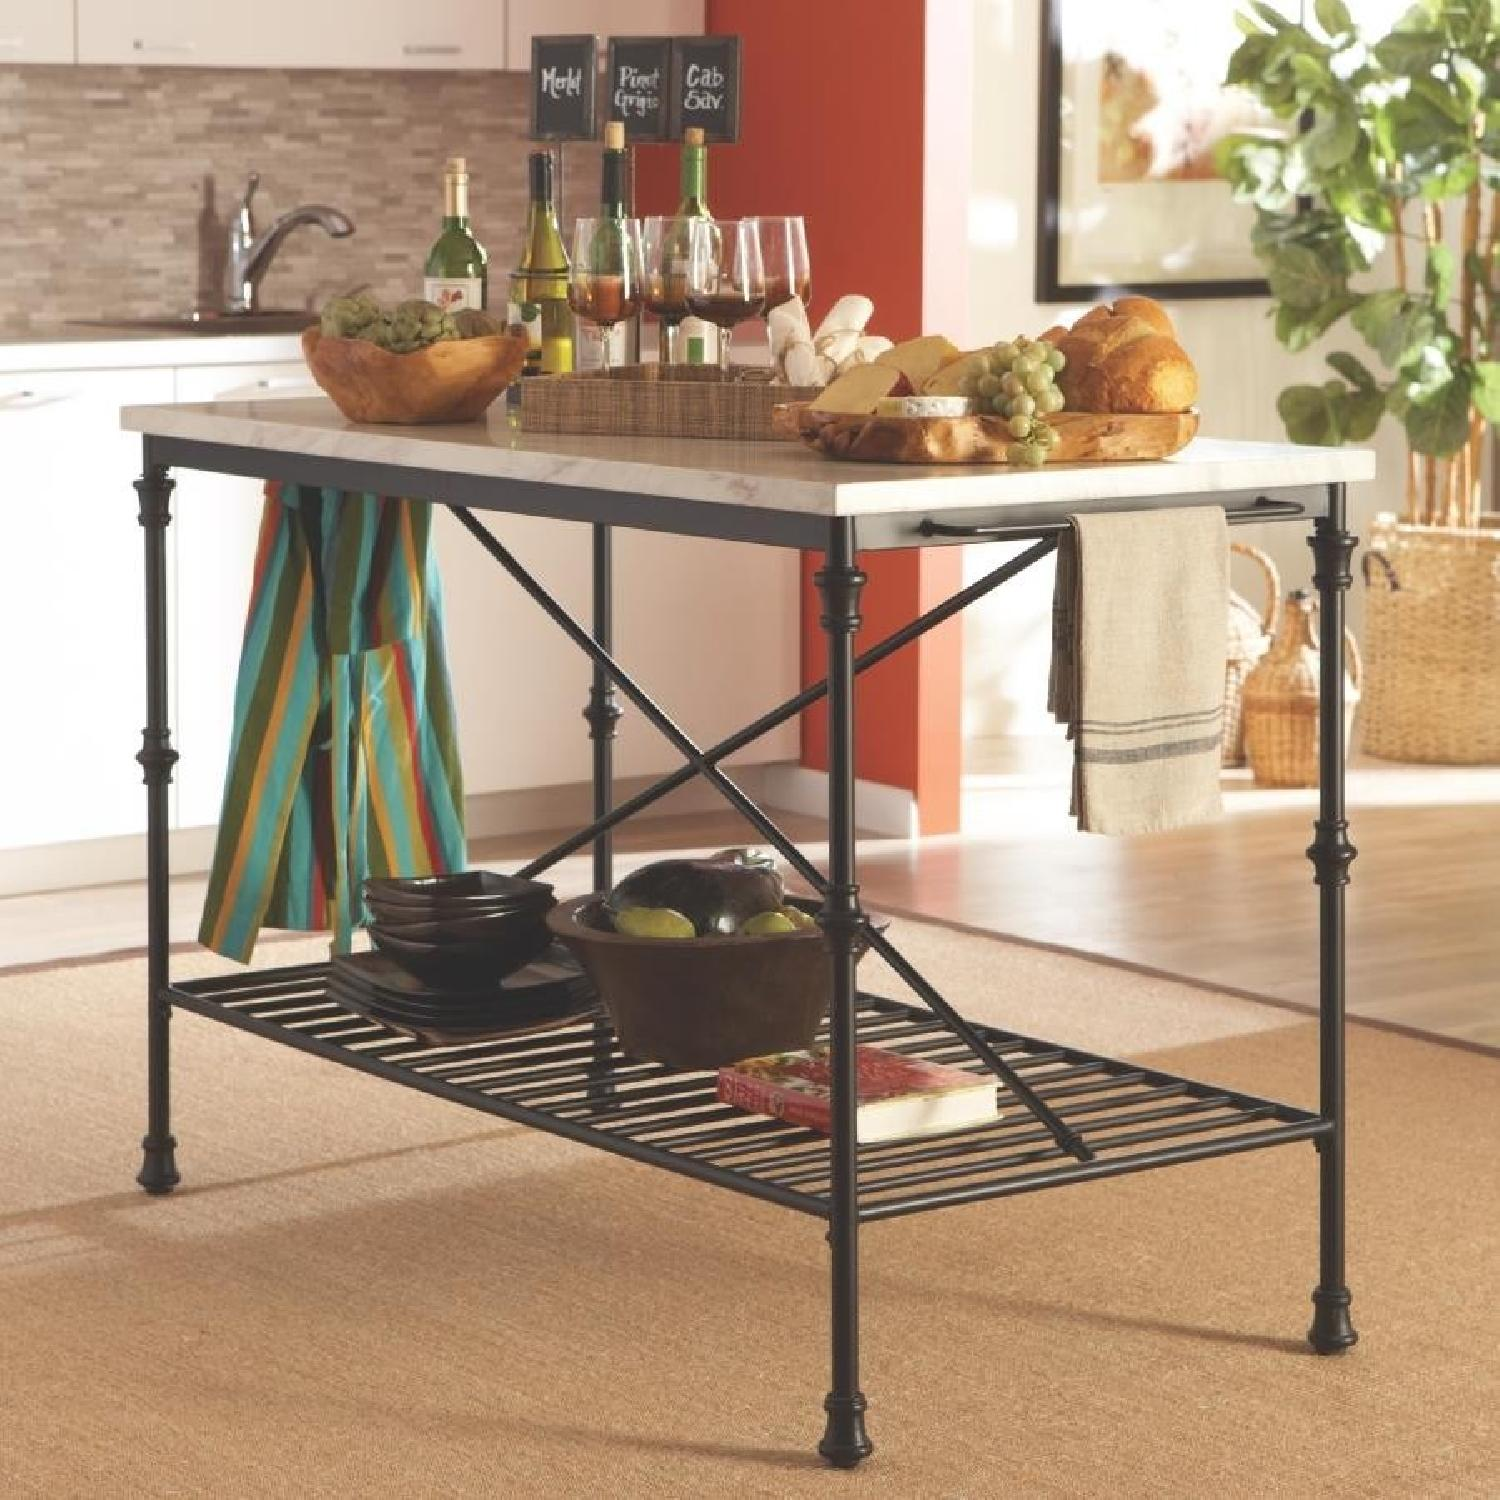 French Bistro Style Counter Height Kitchen Island-0